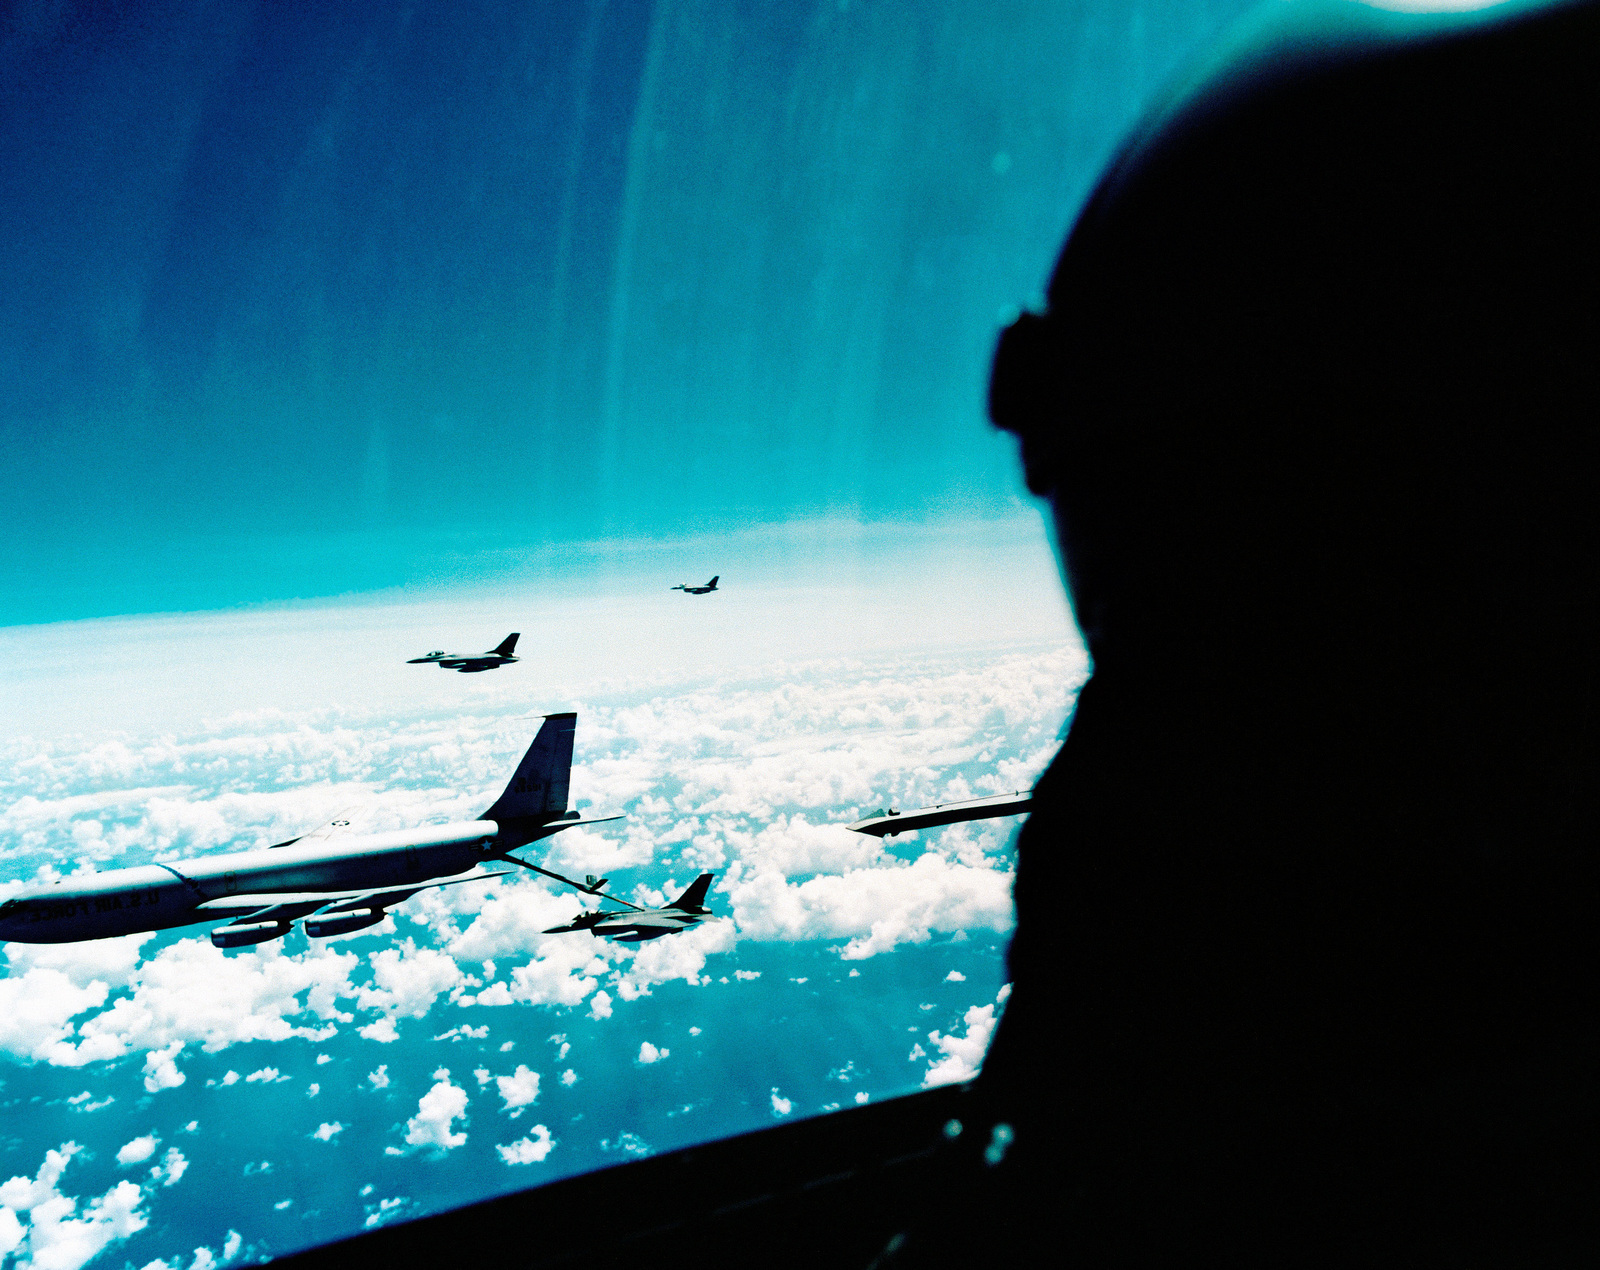 Right side view of a KC-135 Stratotanker aircraft and F-16A Fighting Falcon aircraft, seen from inside another Falcon's canopy, in flight. The KC-135 is refueling one of the aircraft during deployment to Kunsan Air Base, Korea. The Falcons are from the 35th Tactical Fighter Squadron, 8th Tactical Fighter Wing